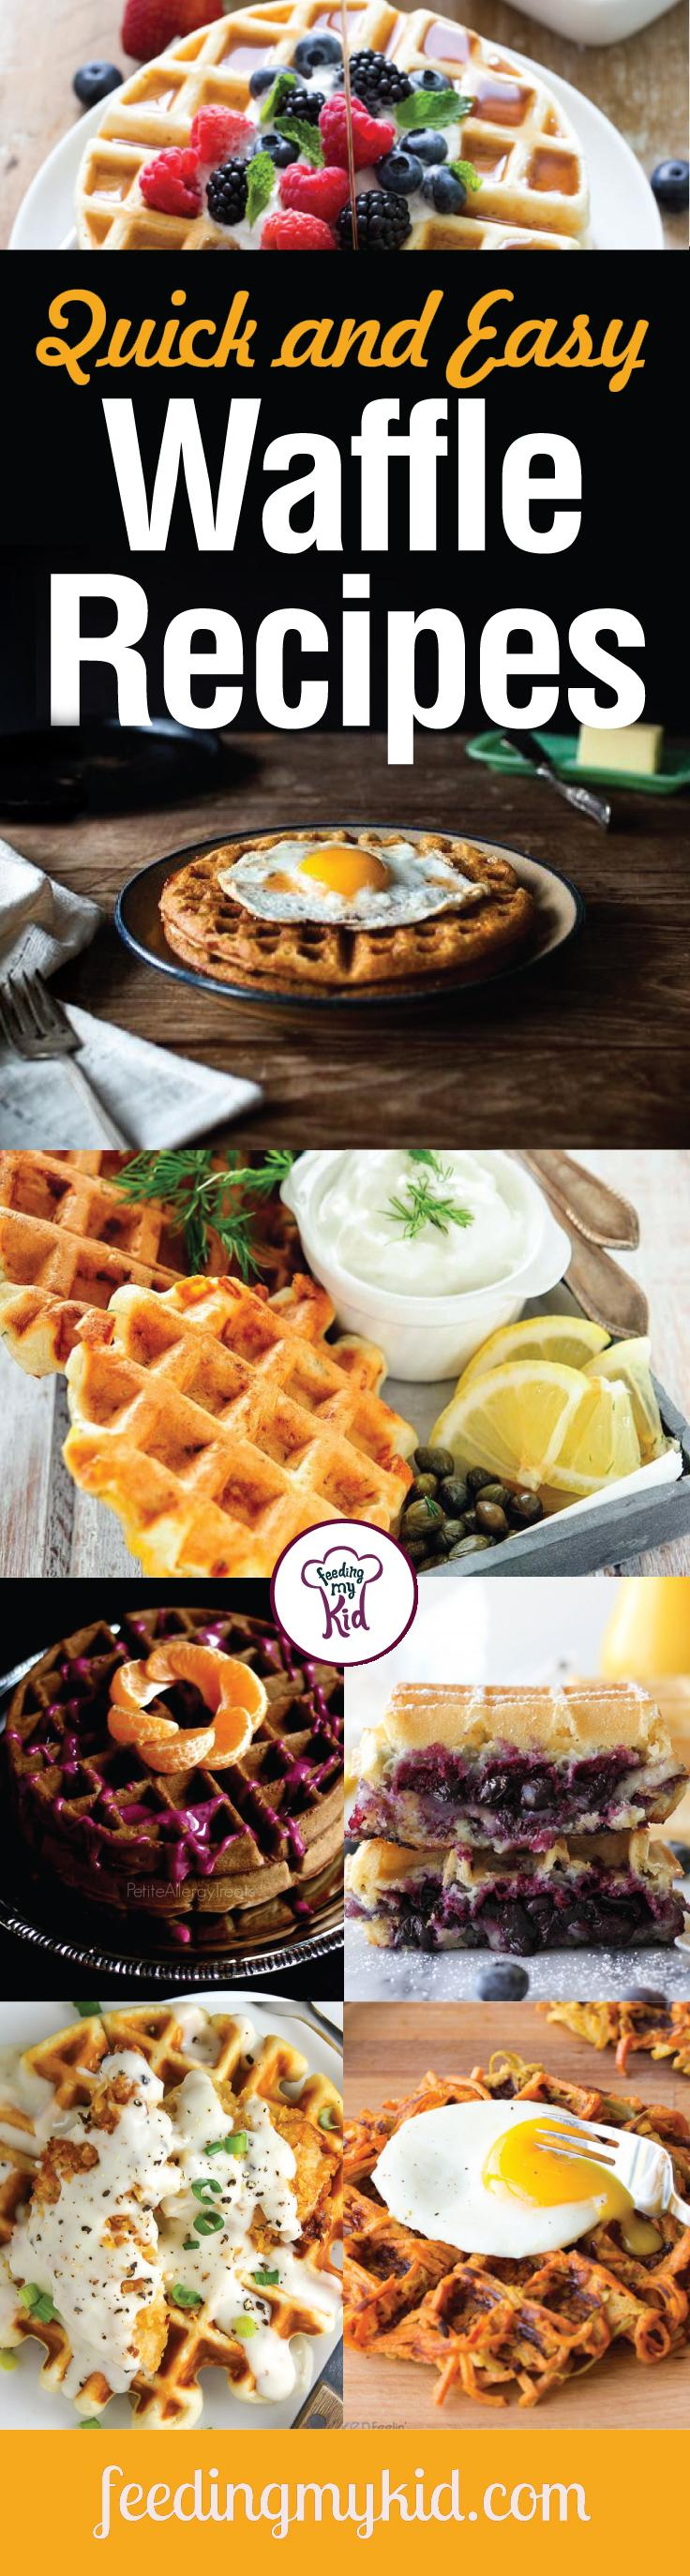 Quick and Easy Waffle Recipes - Whether it's breakfast, brunch, lunch, dinner or a late night snack, waffles are good just about anytime. Waffles can be served with syrup, fruits, eggs or, for the adventurous type, chicken. From a Monte Cristo waffle sandwich to waffle iron hash brown breakfast potatoes; these recipes are sure to please! Give them a go!